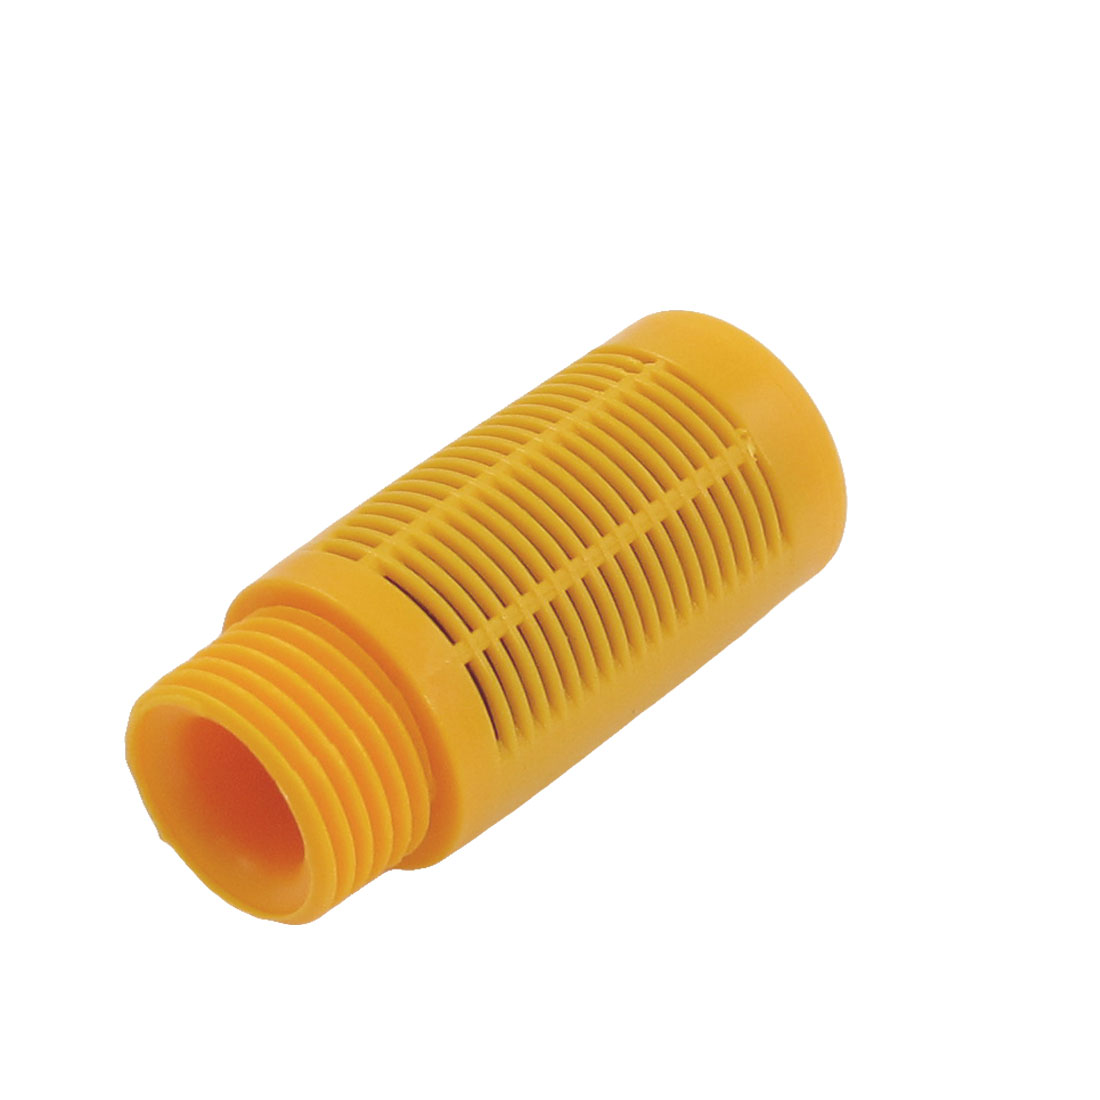 "Yellow Plastic Case Air Exhaust Pneumatic Silencer Muffler 4""NPT"